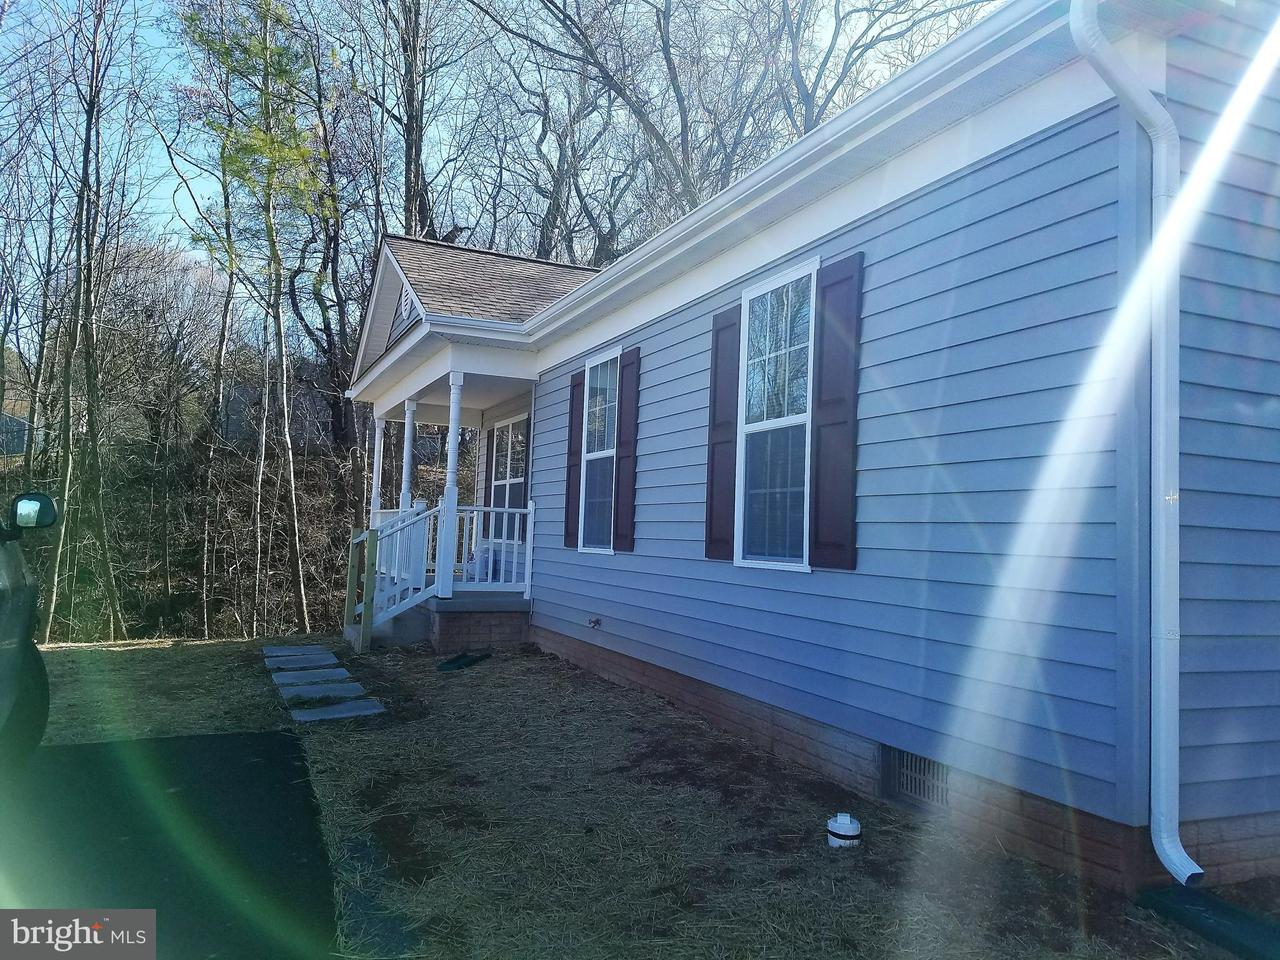 Other Residential for Rent at 137 Aberdeen Dr Culpeper, Virginia 22701 United States